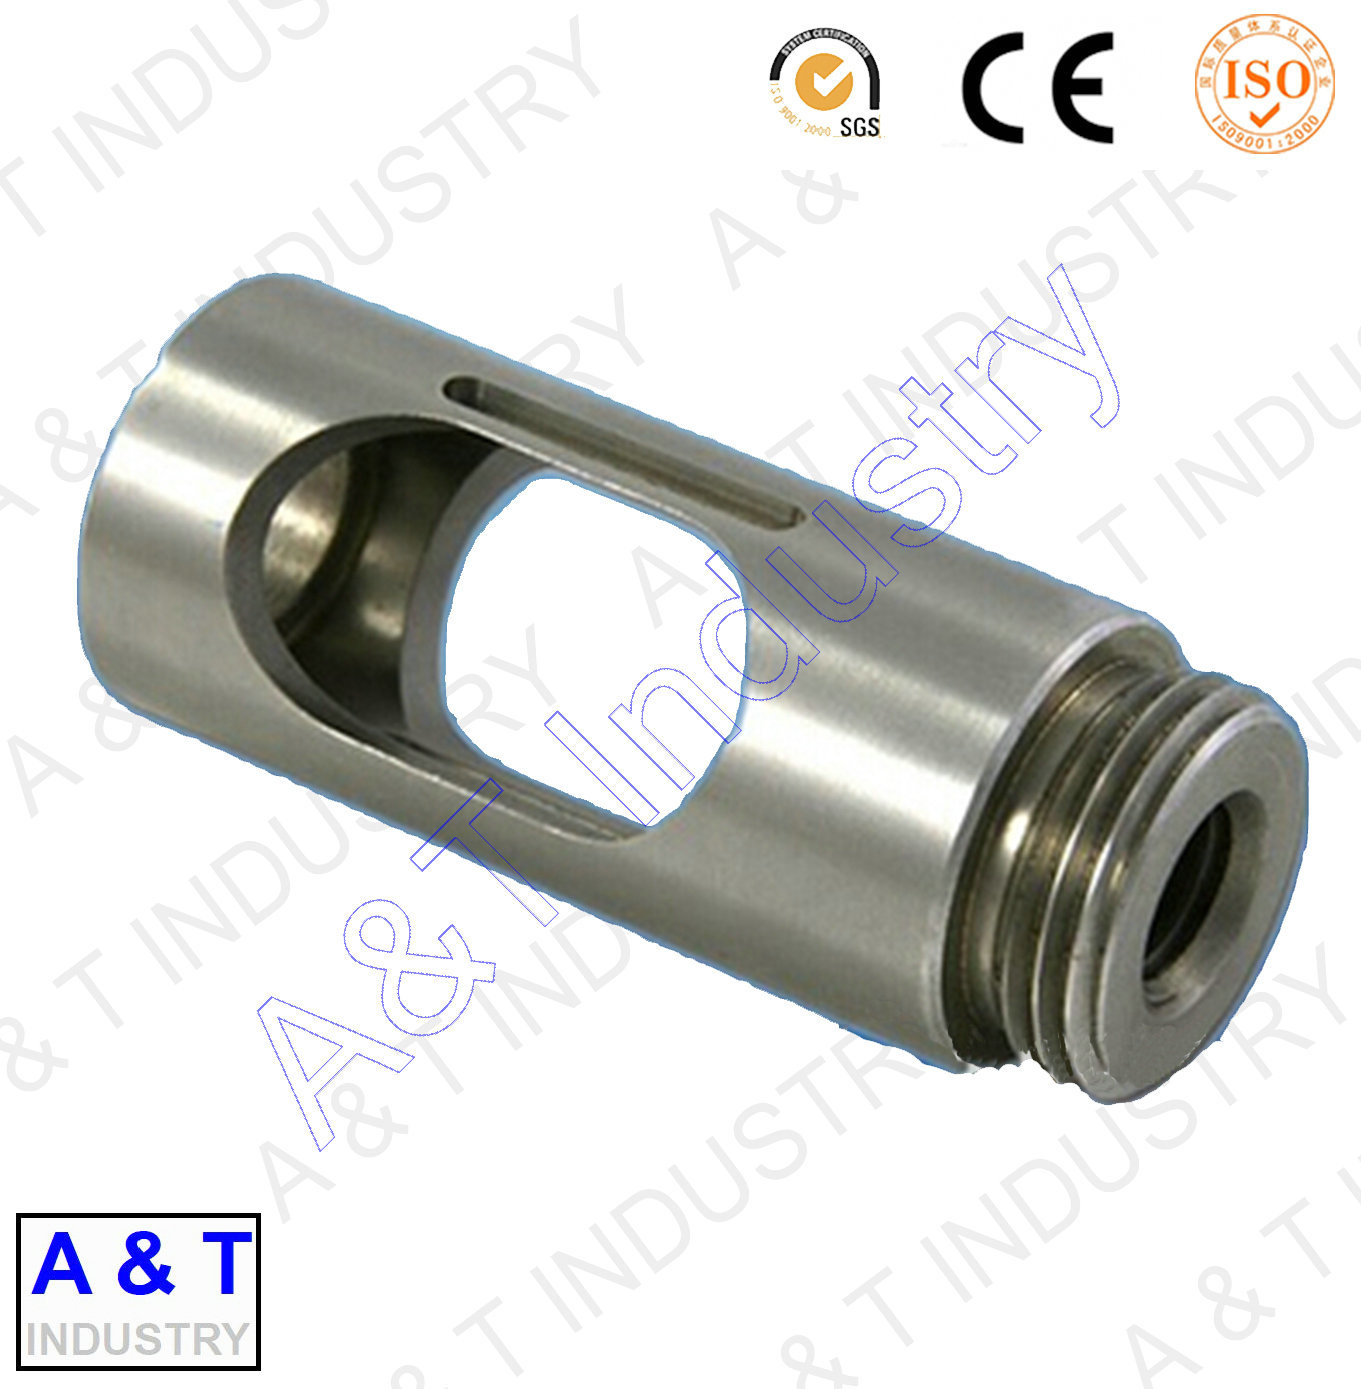 CNC Customize Stainless Steel/Brass/Aluminum Turning Parts